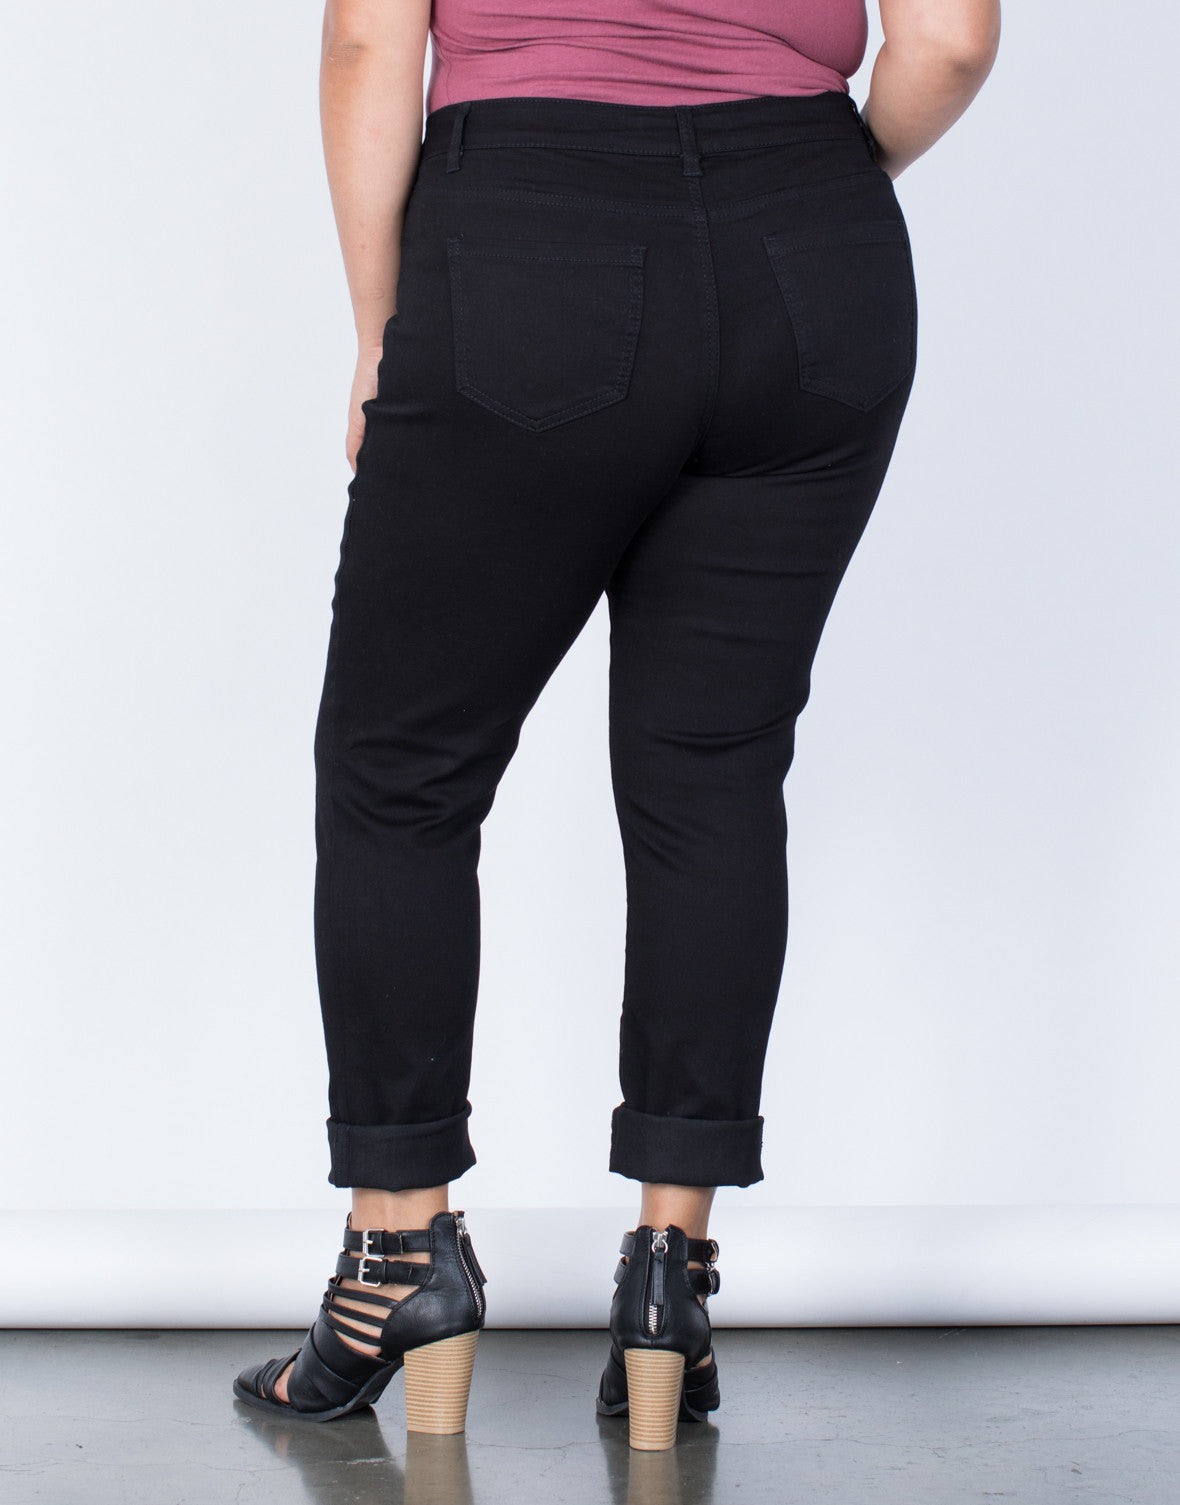 Black Plus Size The Everyday Pants - Back View